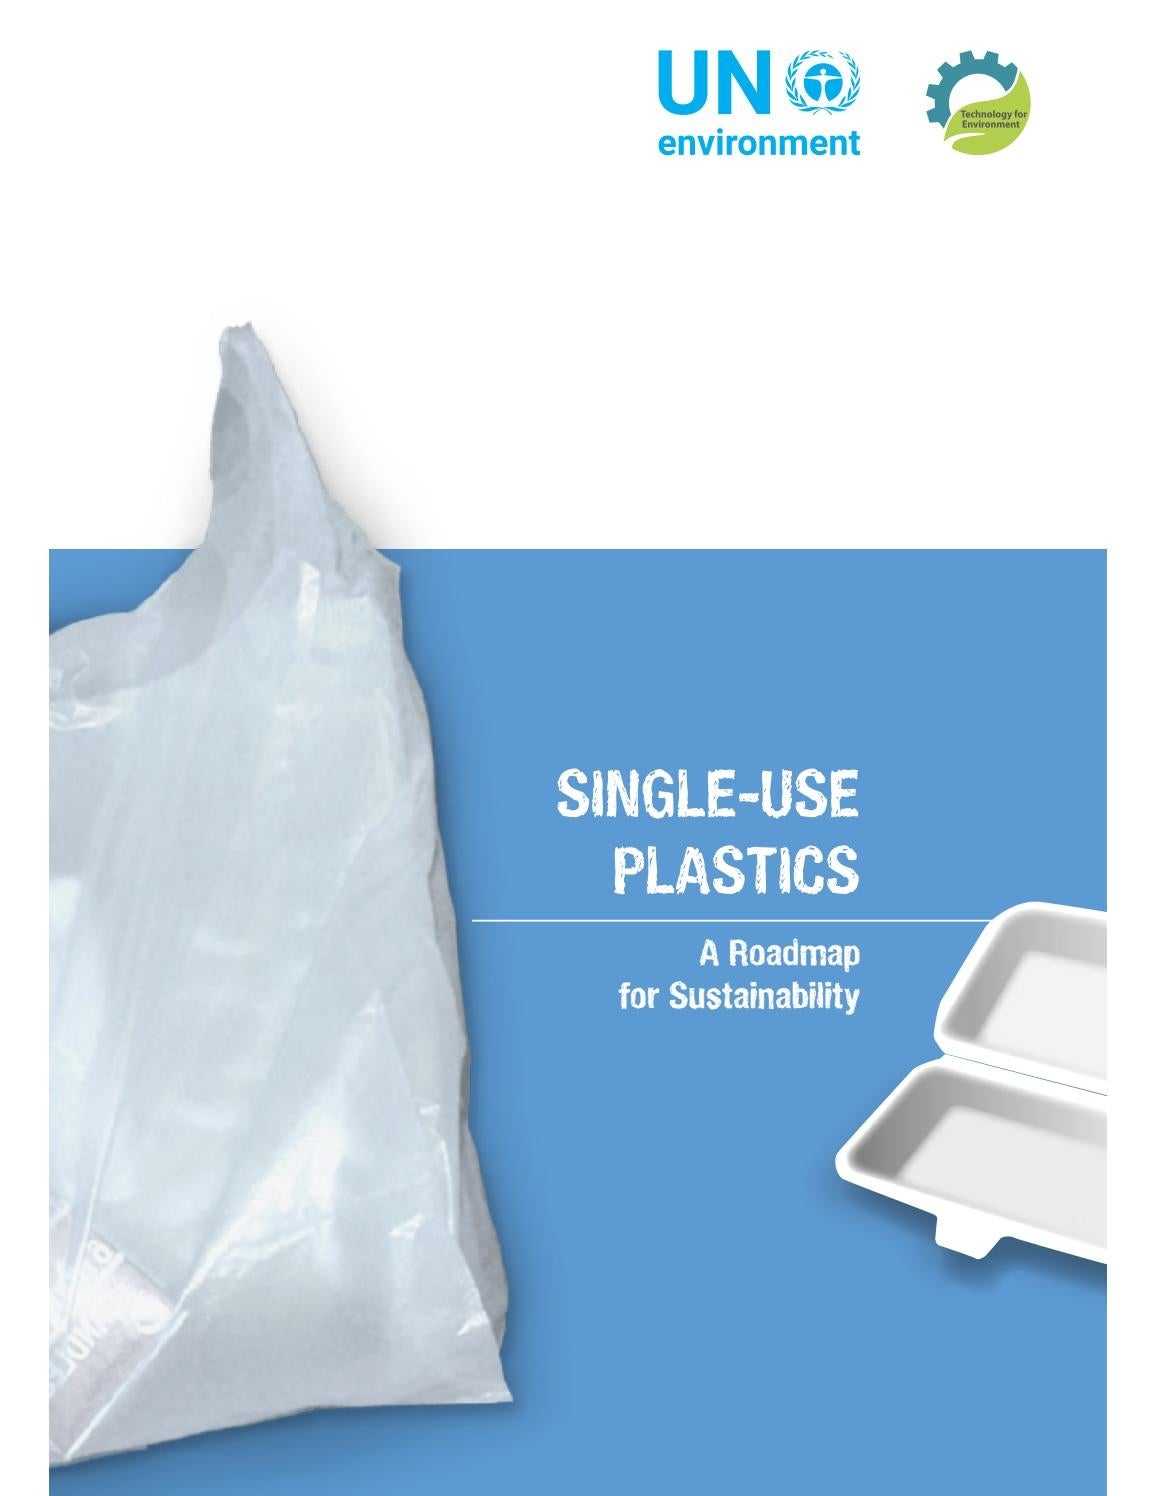 Un single use plastic sustainability by funverde - issuu